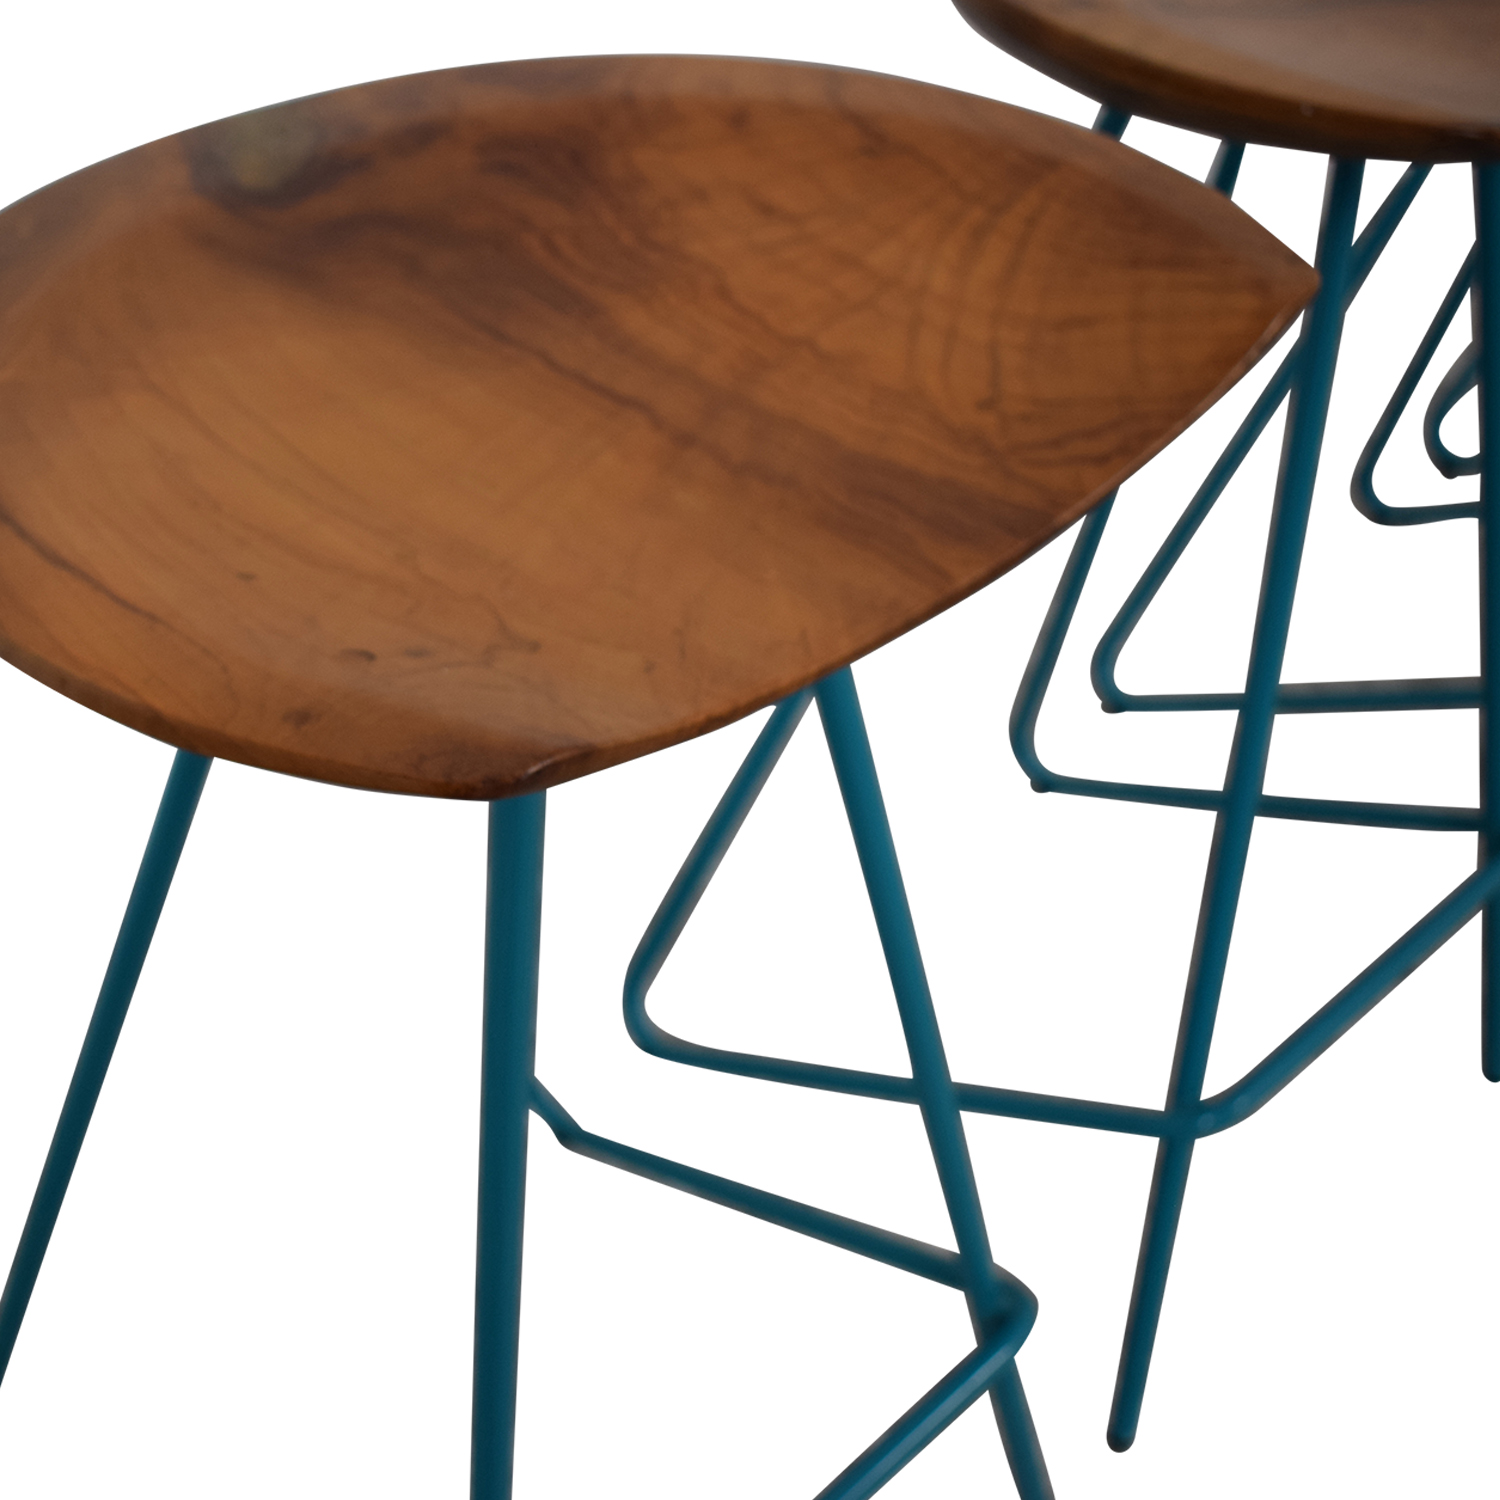 From the Source Teal Perch Bar Stools / Stools